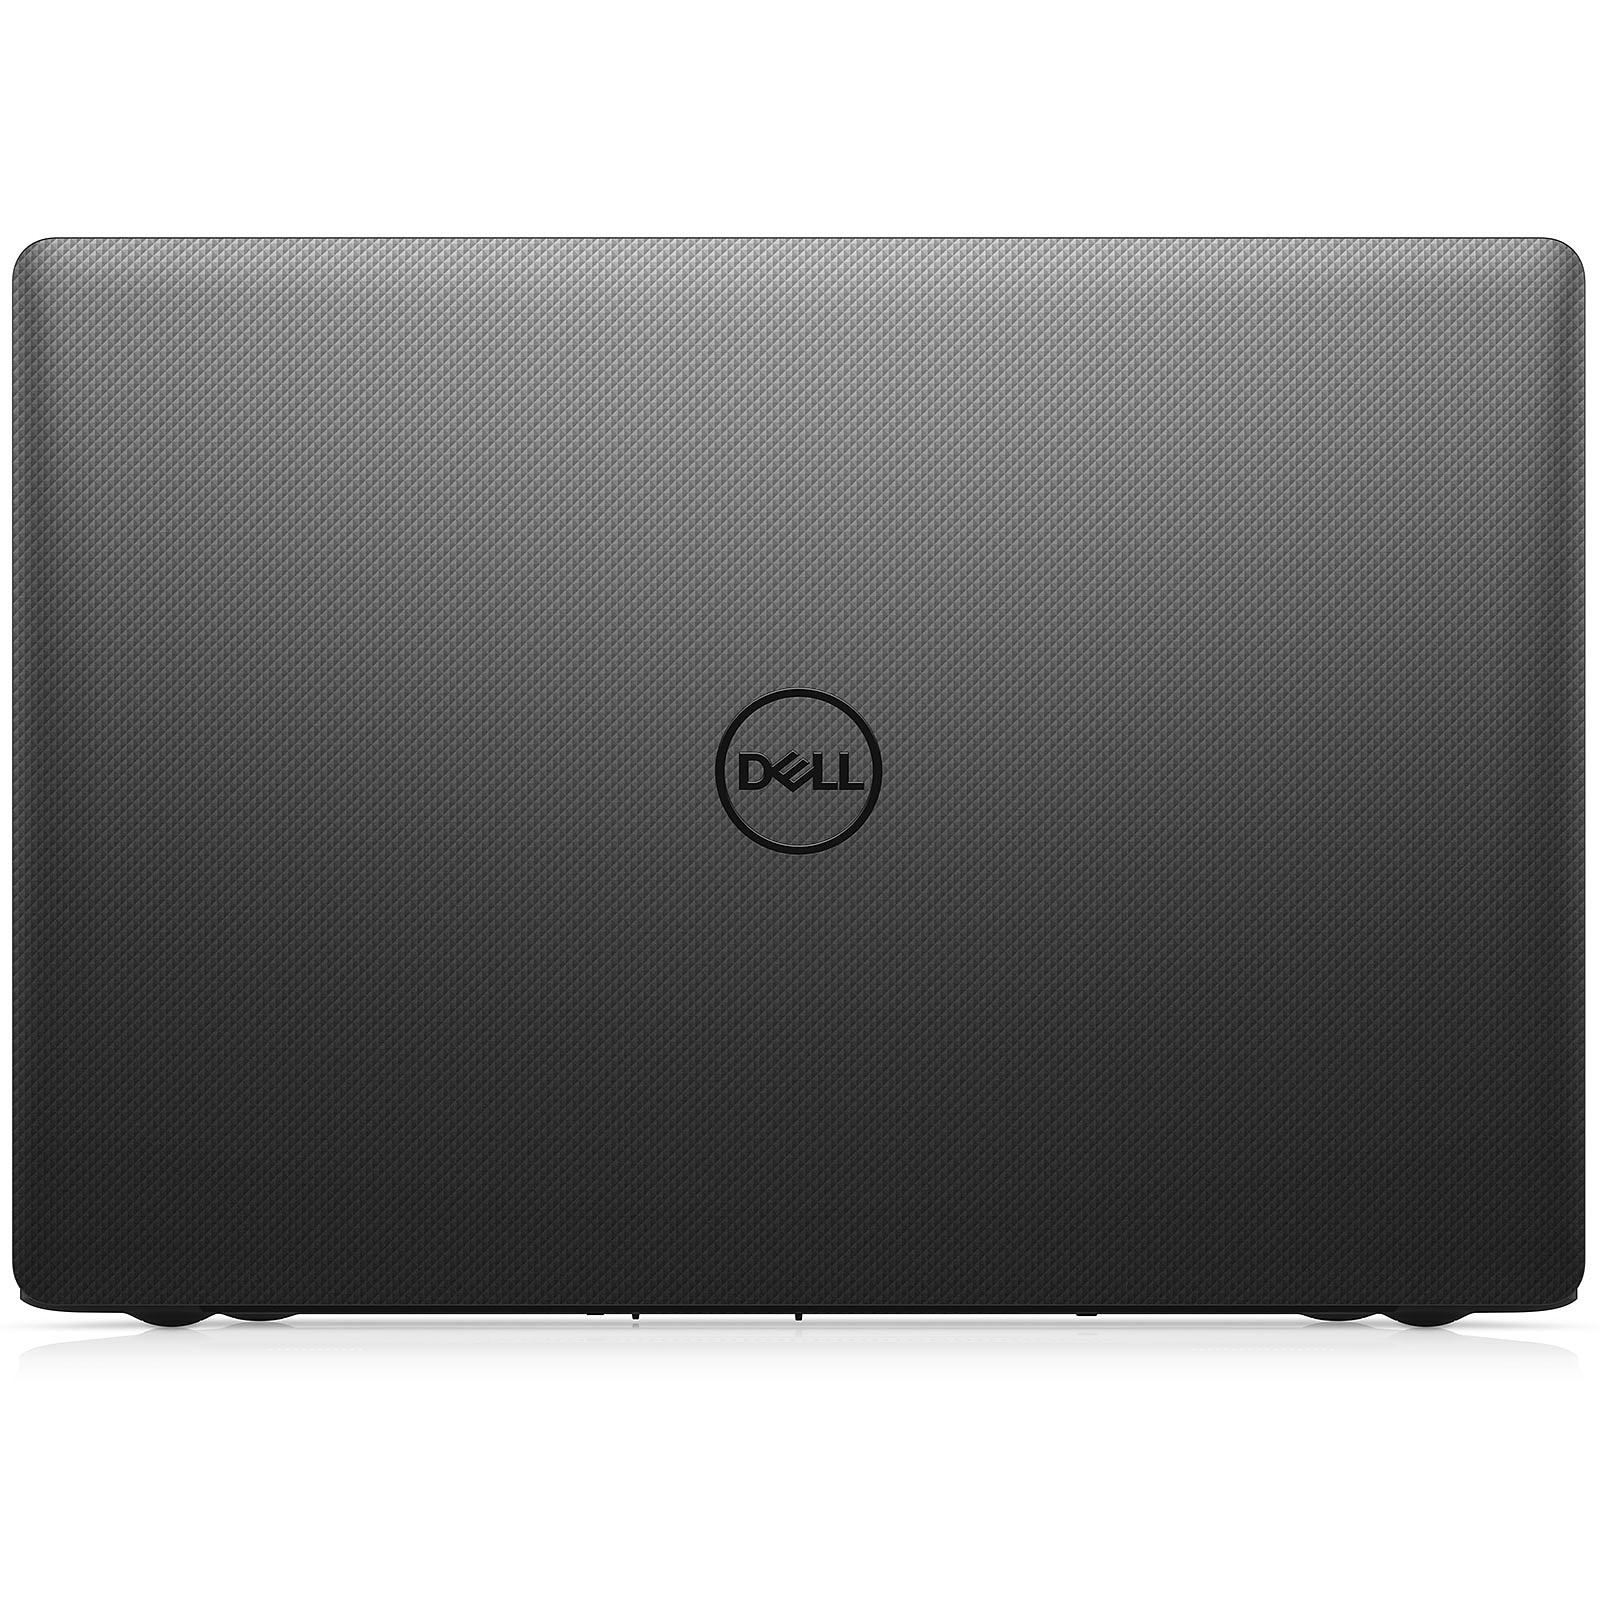 DELL VOSTRO 1000 VGA DOWNLOAD DRIVER